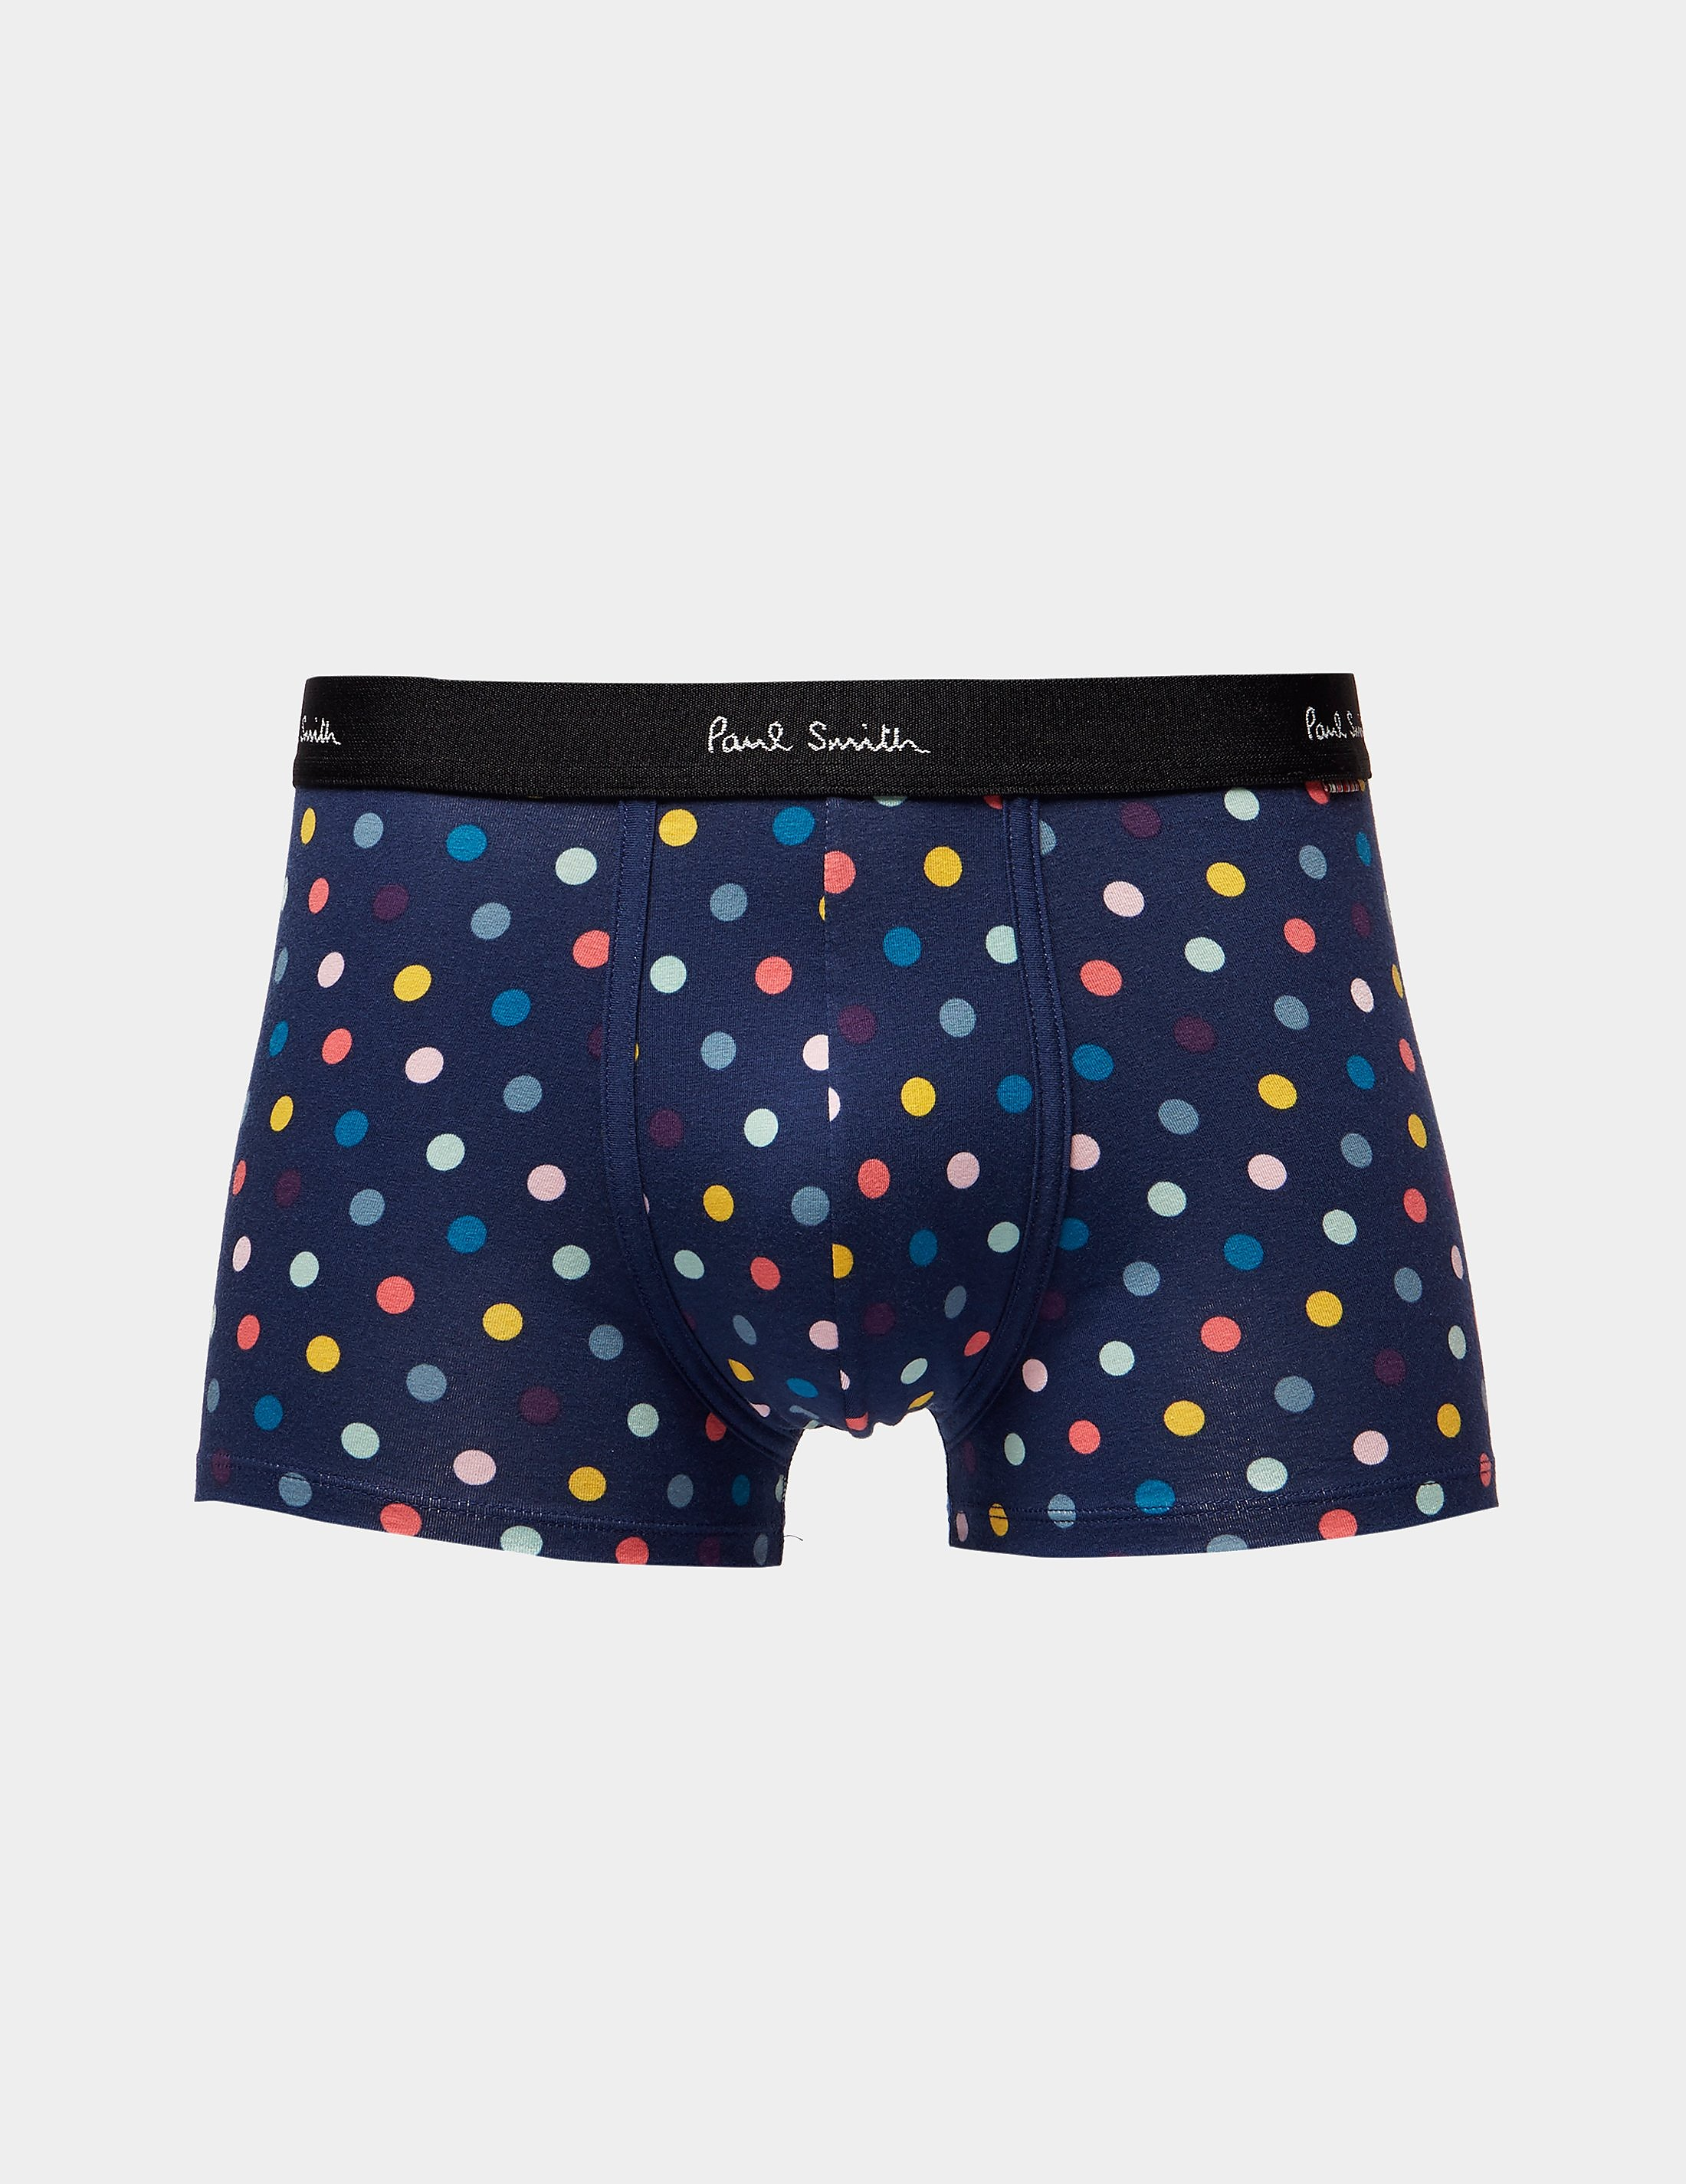 Paul Smith Patterned Boxer Shorts